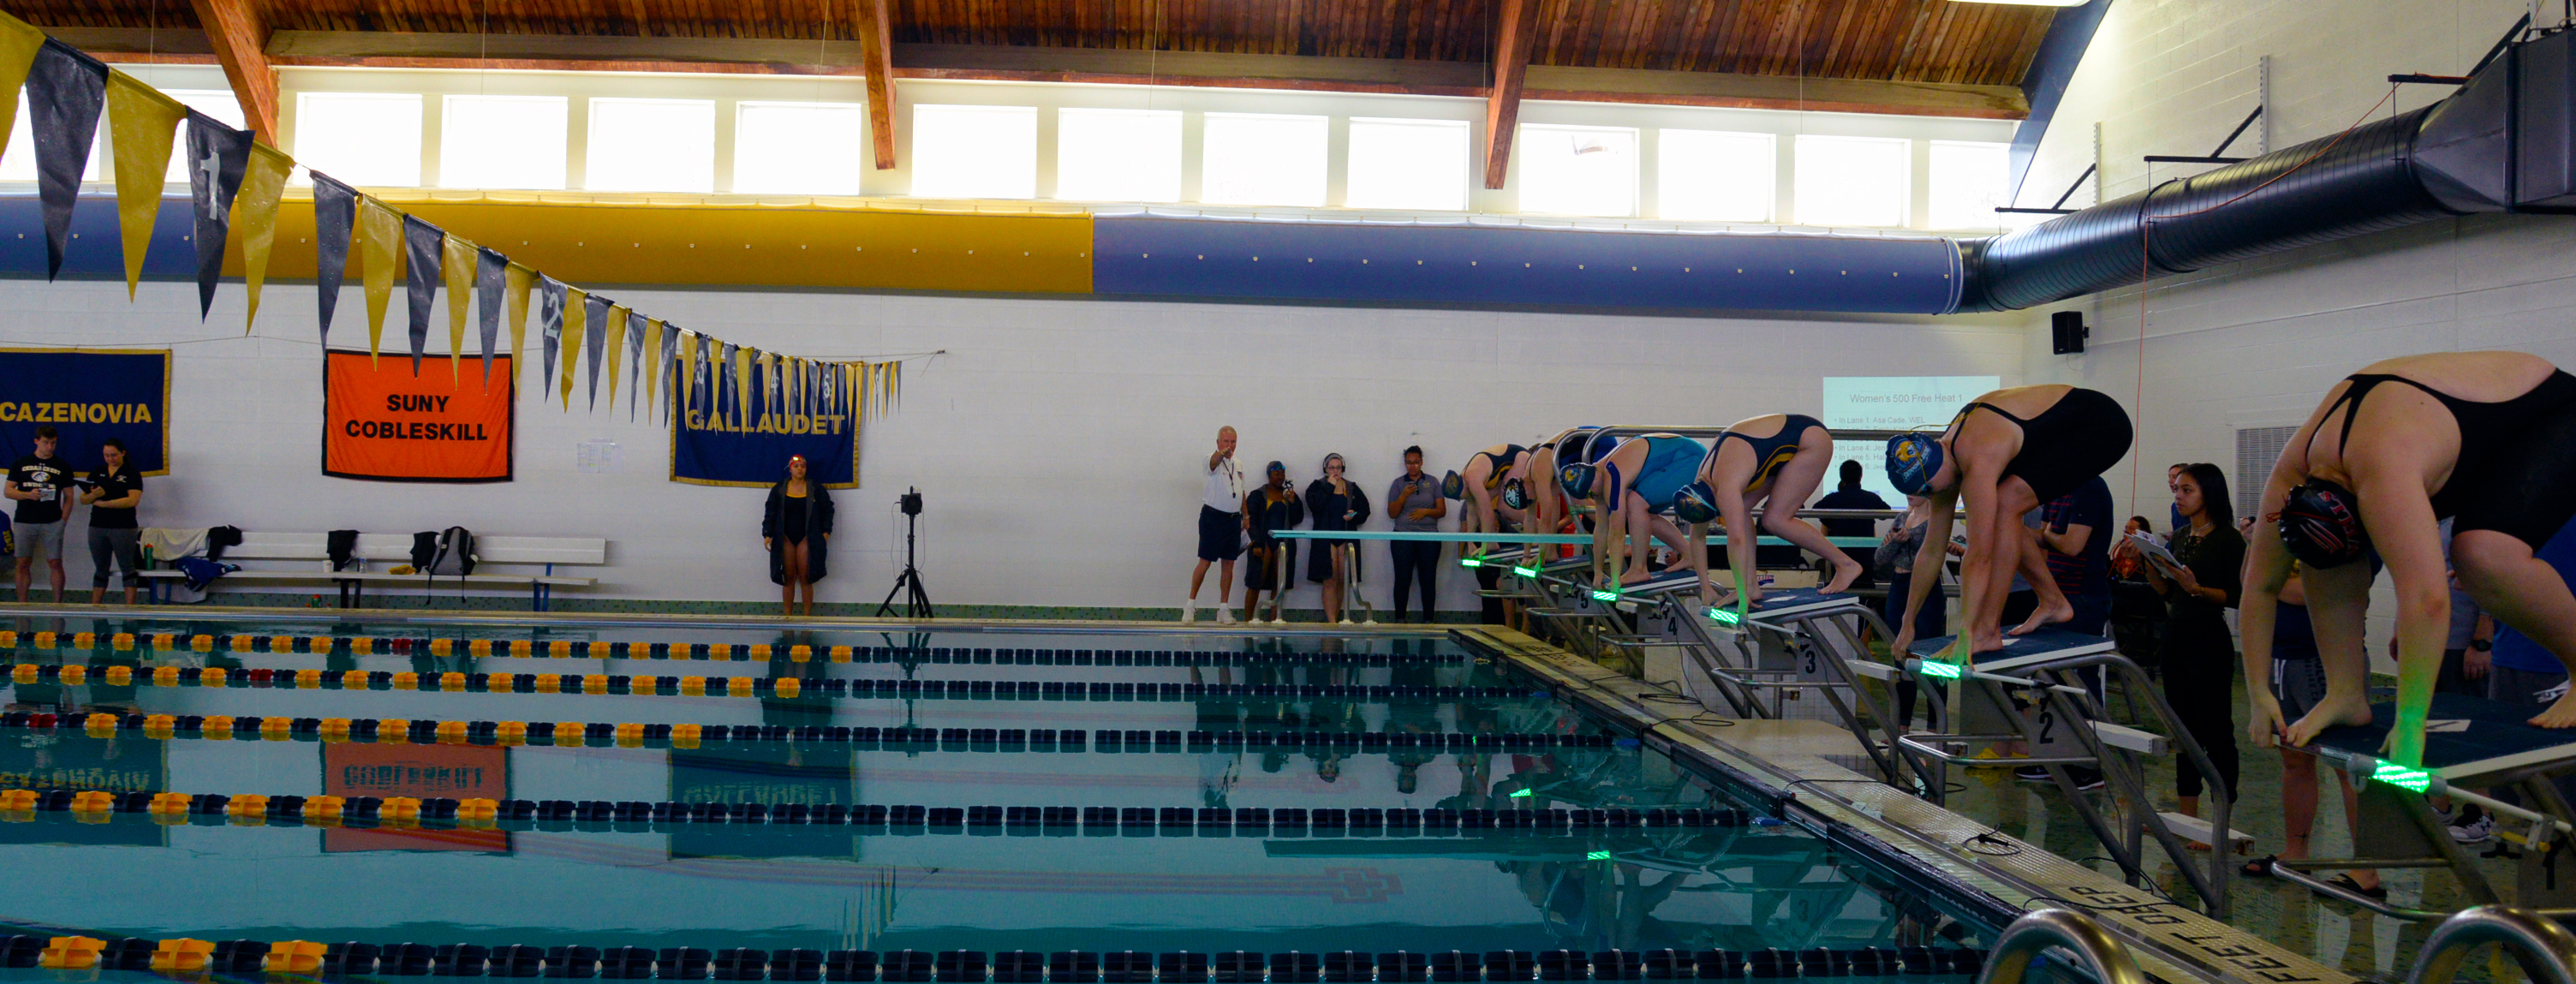 Reaction Light System used for the first time during NEAC Swimming and Diving Championships at Cazenovia College